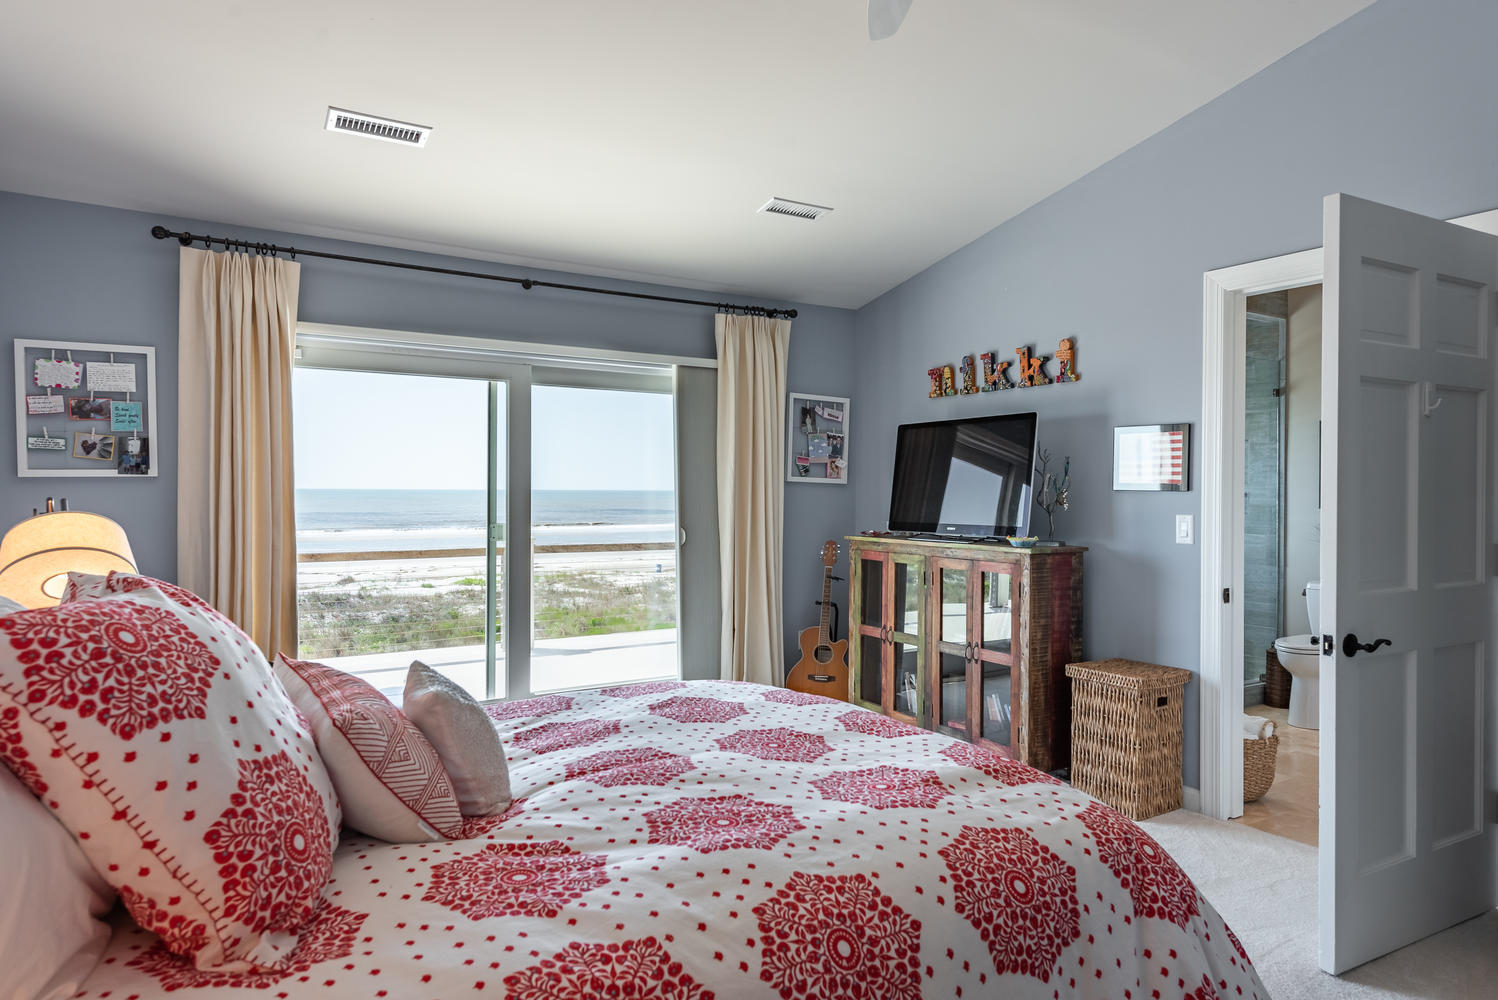 Isle of Palms Homes For Sale - 2 50th, Isle of Palms, SC - 20